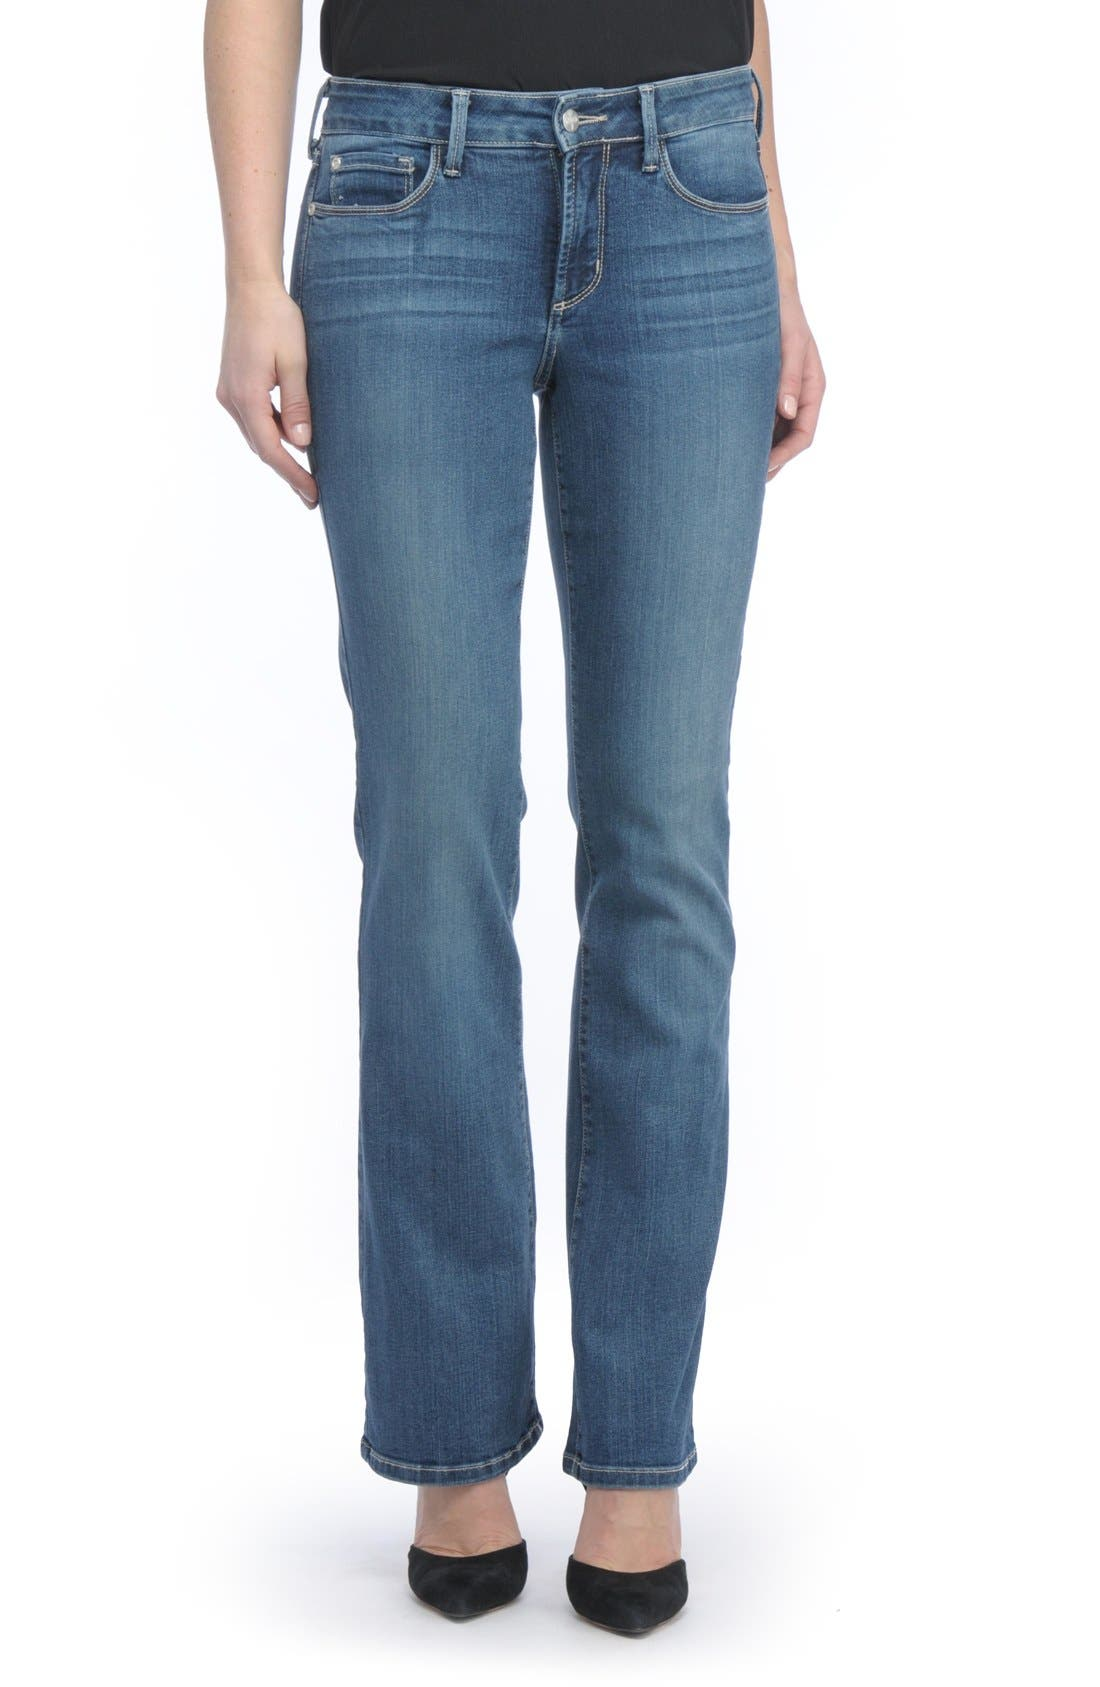 Alternate Image 1 Selected - NYDJ Barbara Stretch Bootcut Jeans (Heyburn) (Regular & Petite)